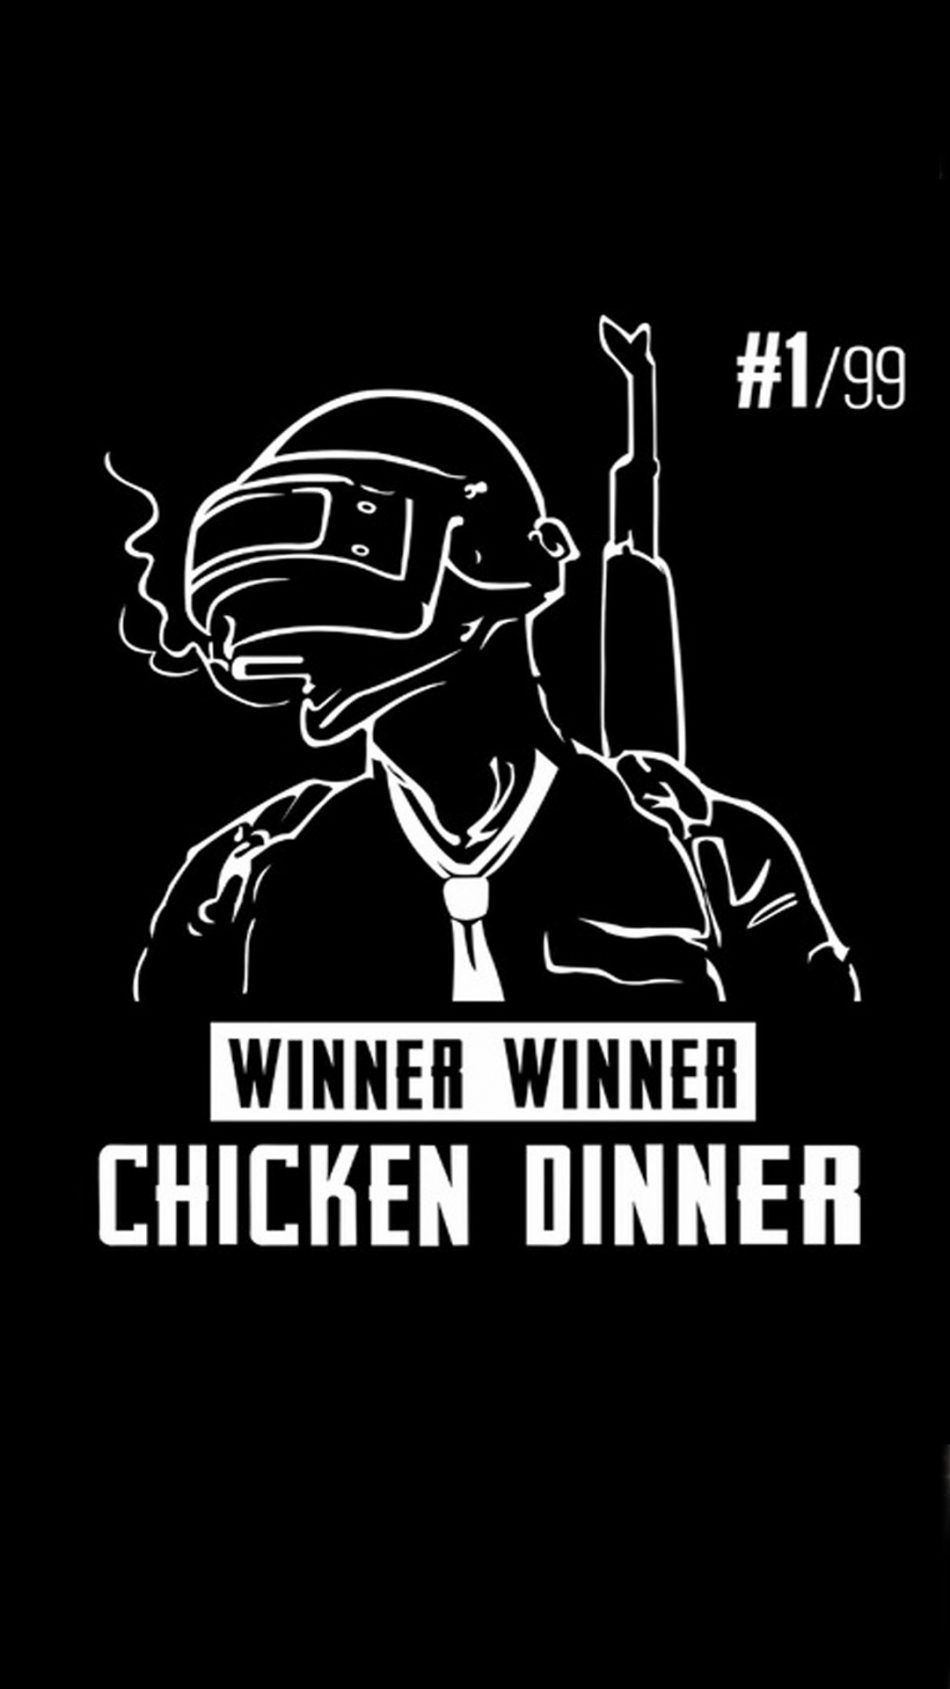 17 Pubg Mobile Hd Wallpapers For Iphone Android Page 2